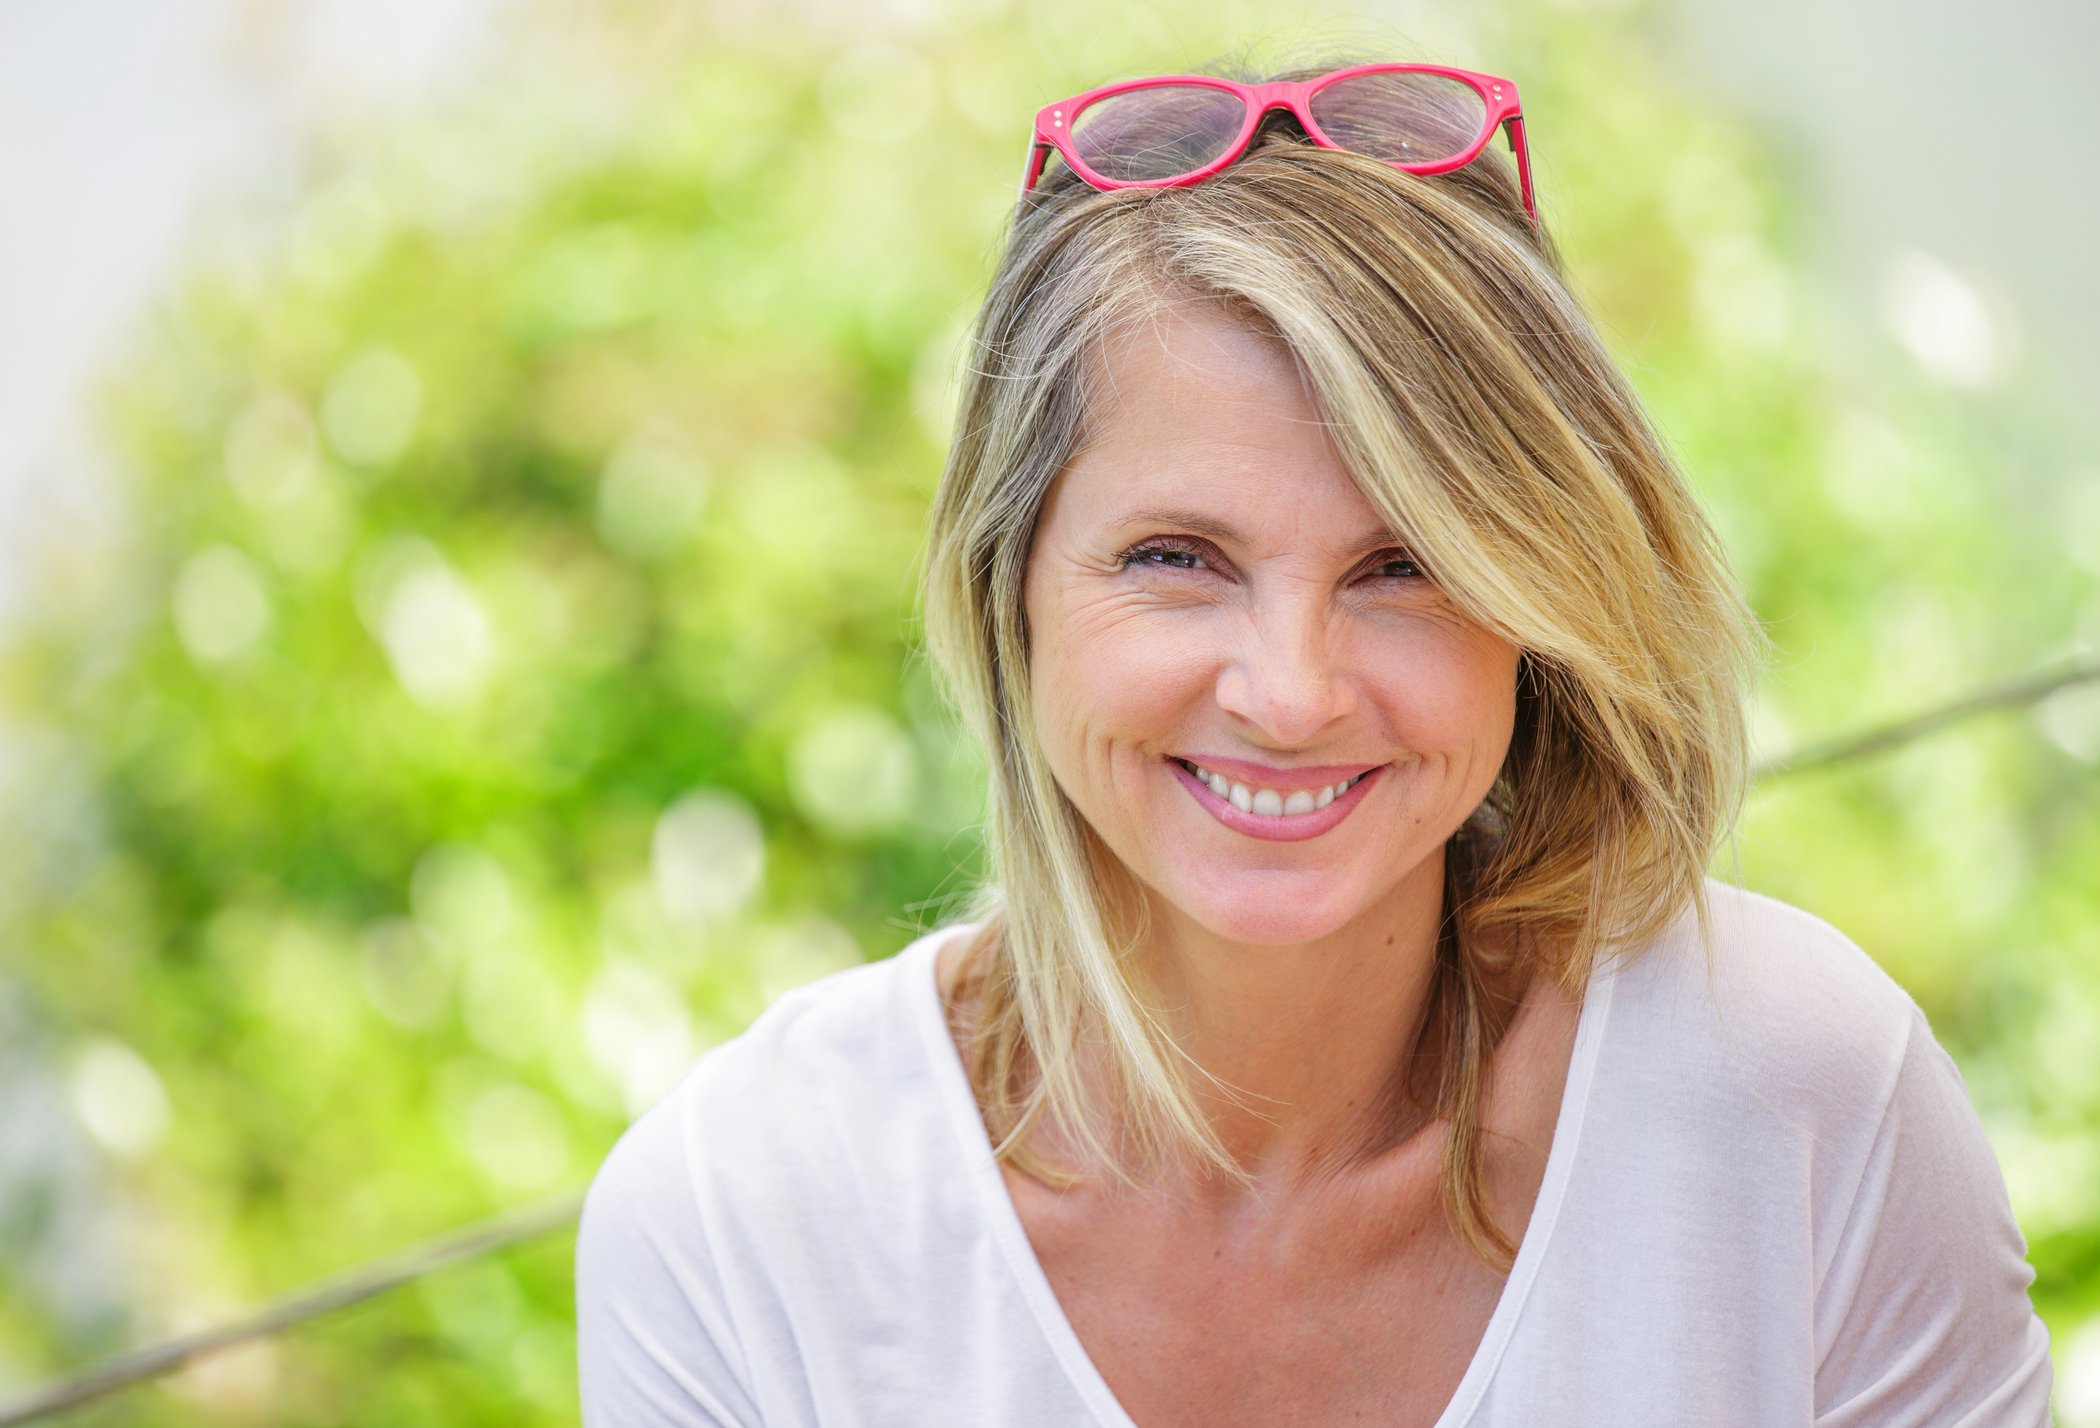 Portrait of charming blond woman of middle-aged smiling in glasses